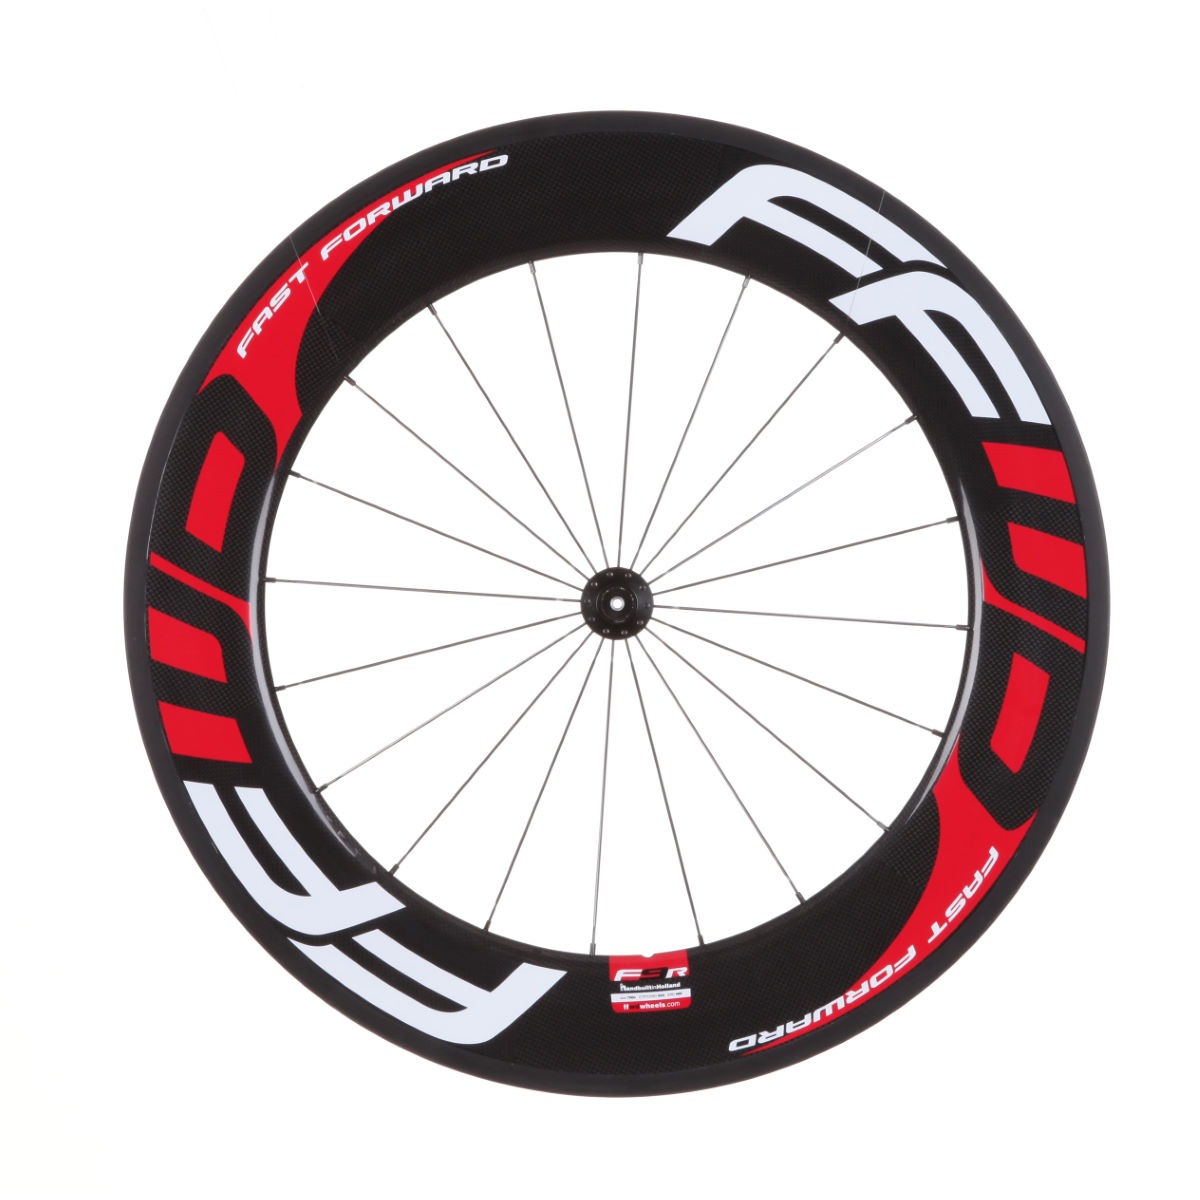 Roue avant à boyau Fast Forward F9R (carbone) - 700c - Tubular Black/Red/White Roues performance